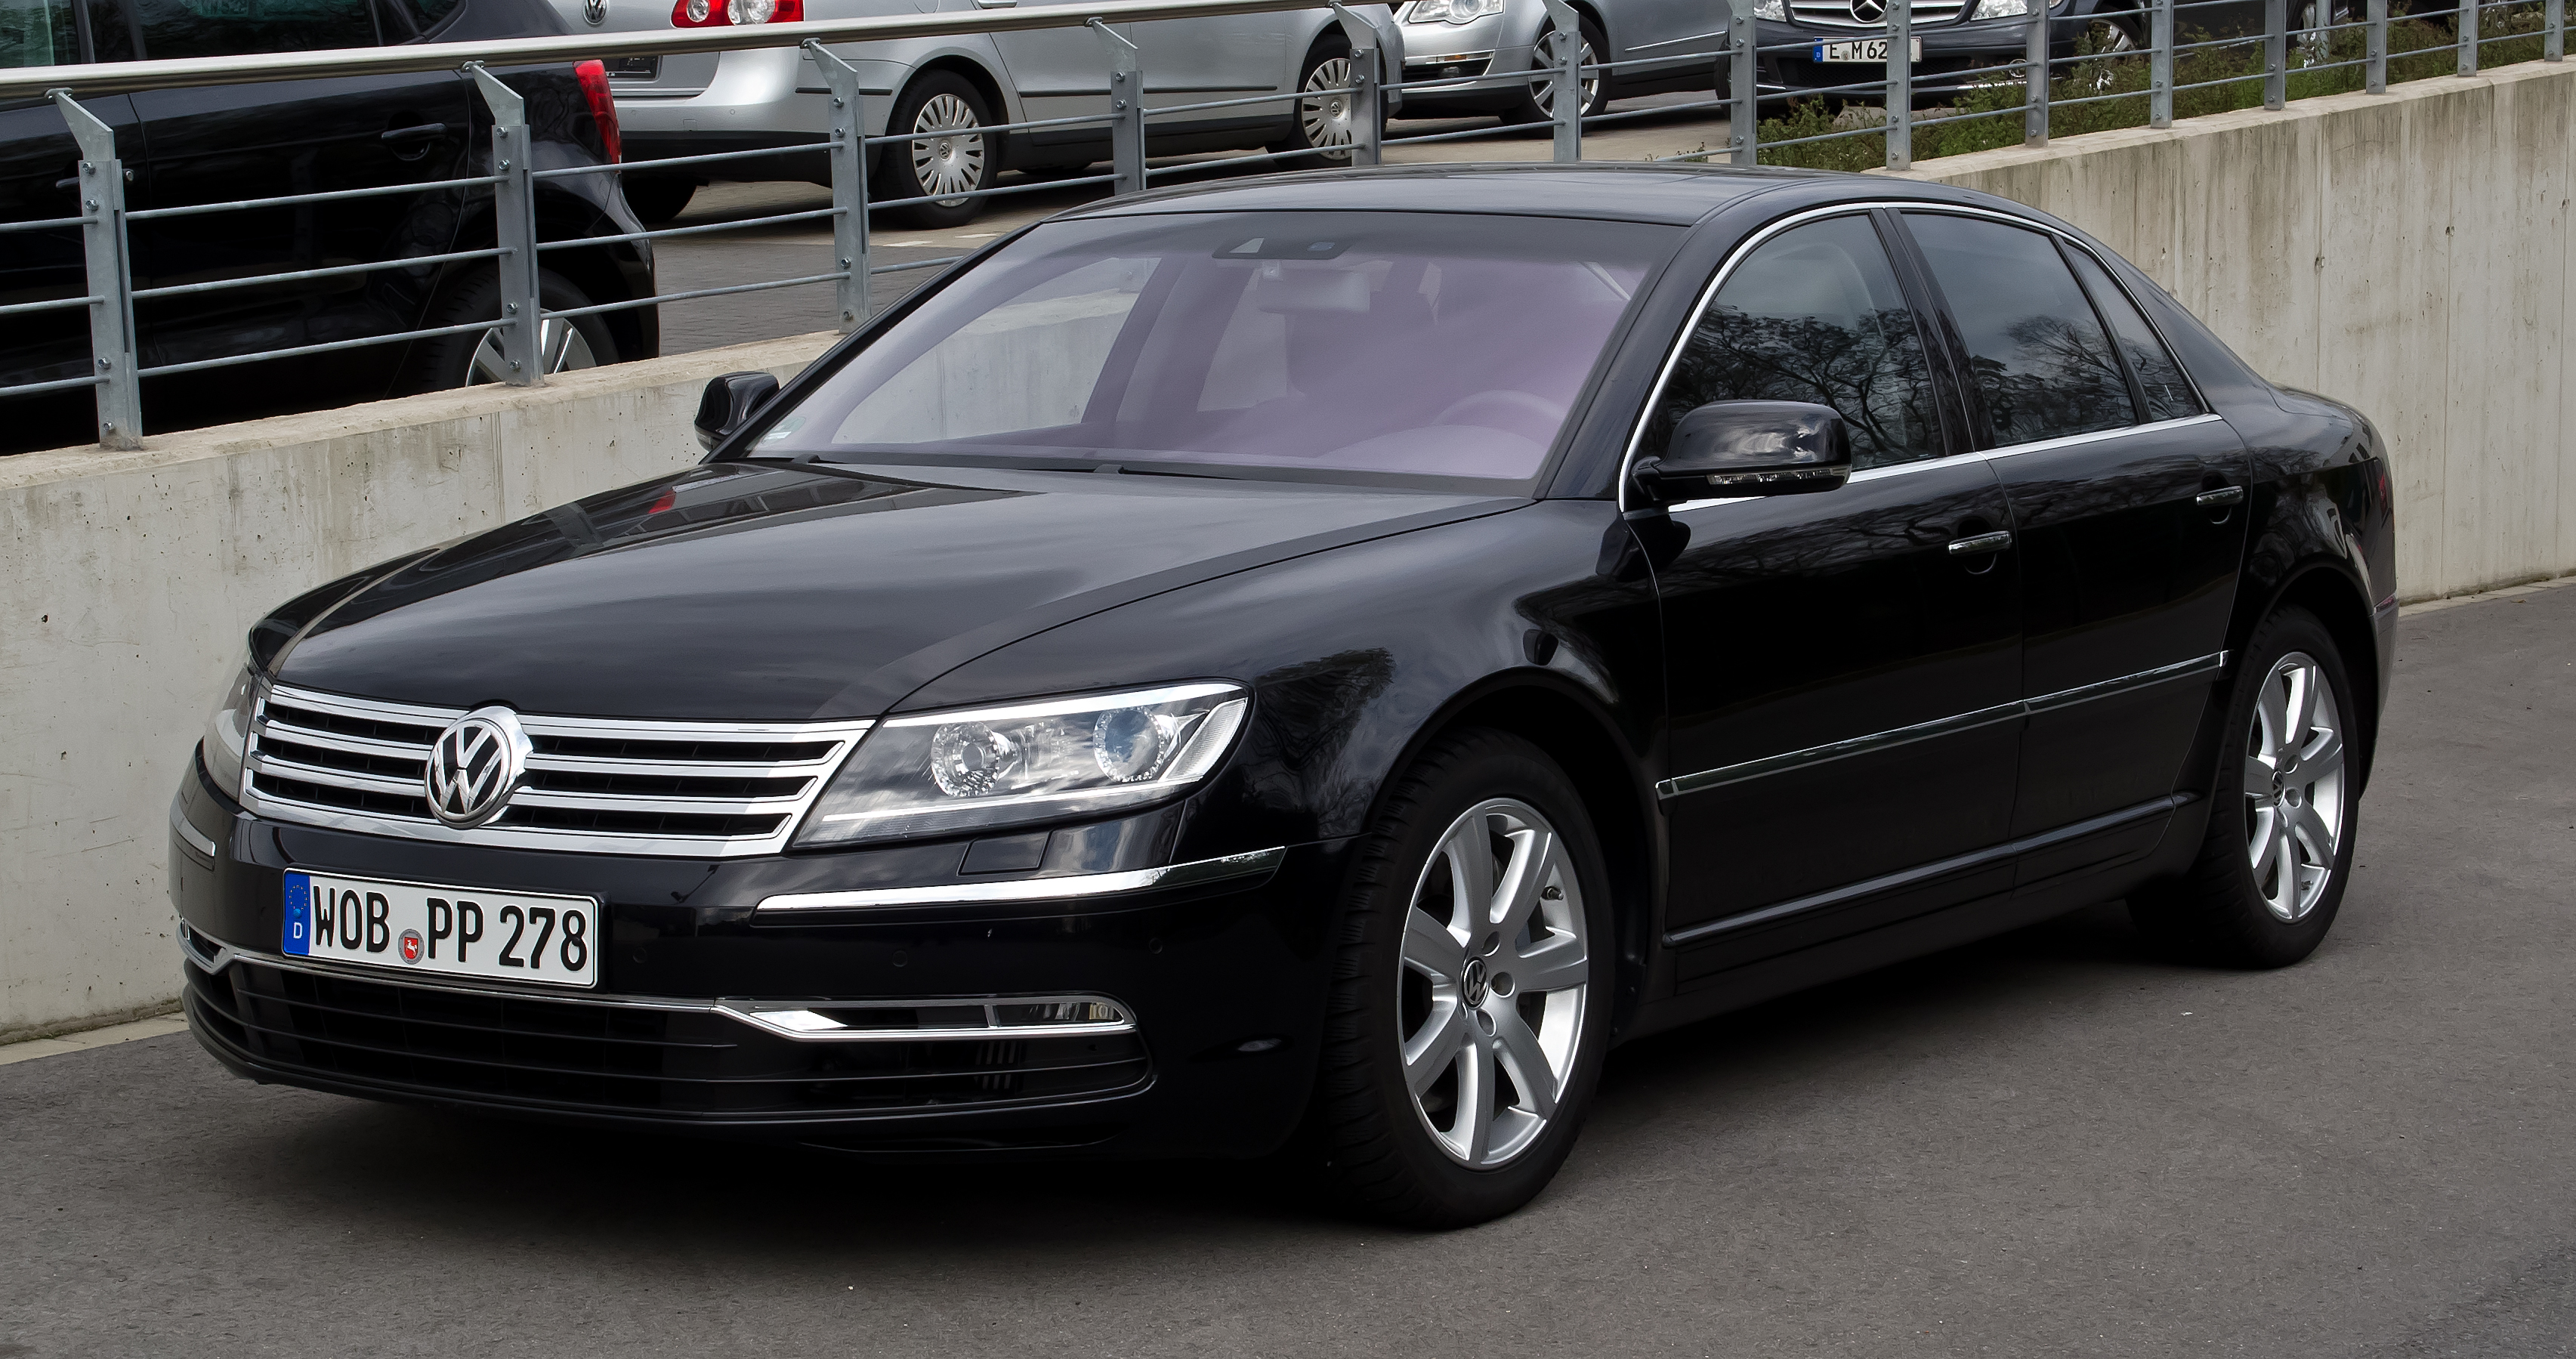 file vw phaeton 3 0 v6 tdi 4motion 2 facelift frontansicht 1 april 2012. Black Bedroom Furniture Sets. Home Design Ideas